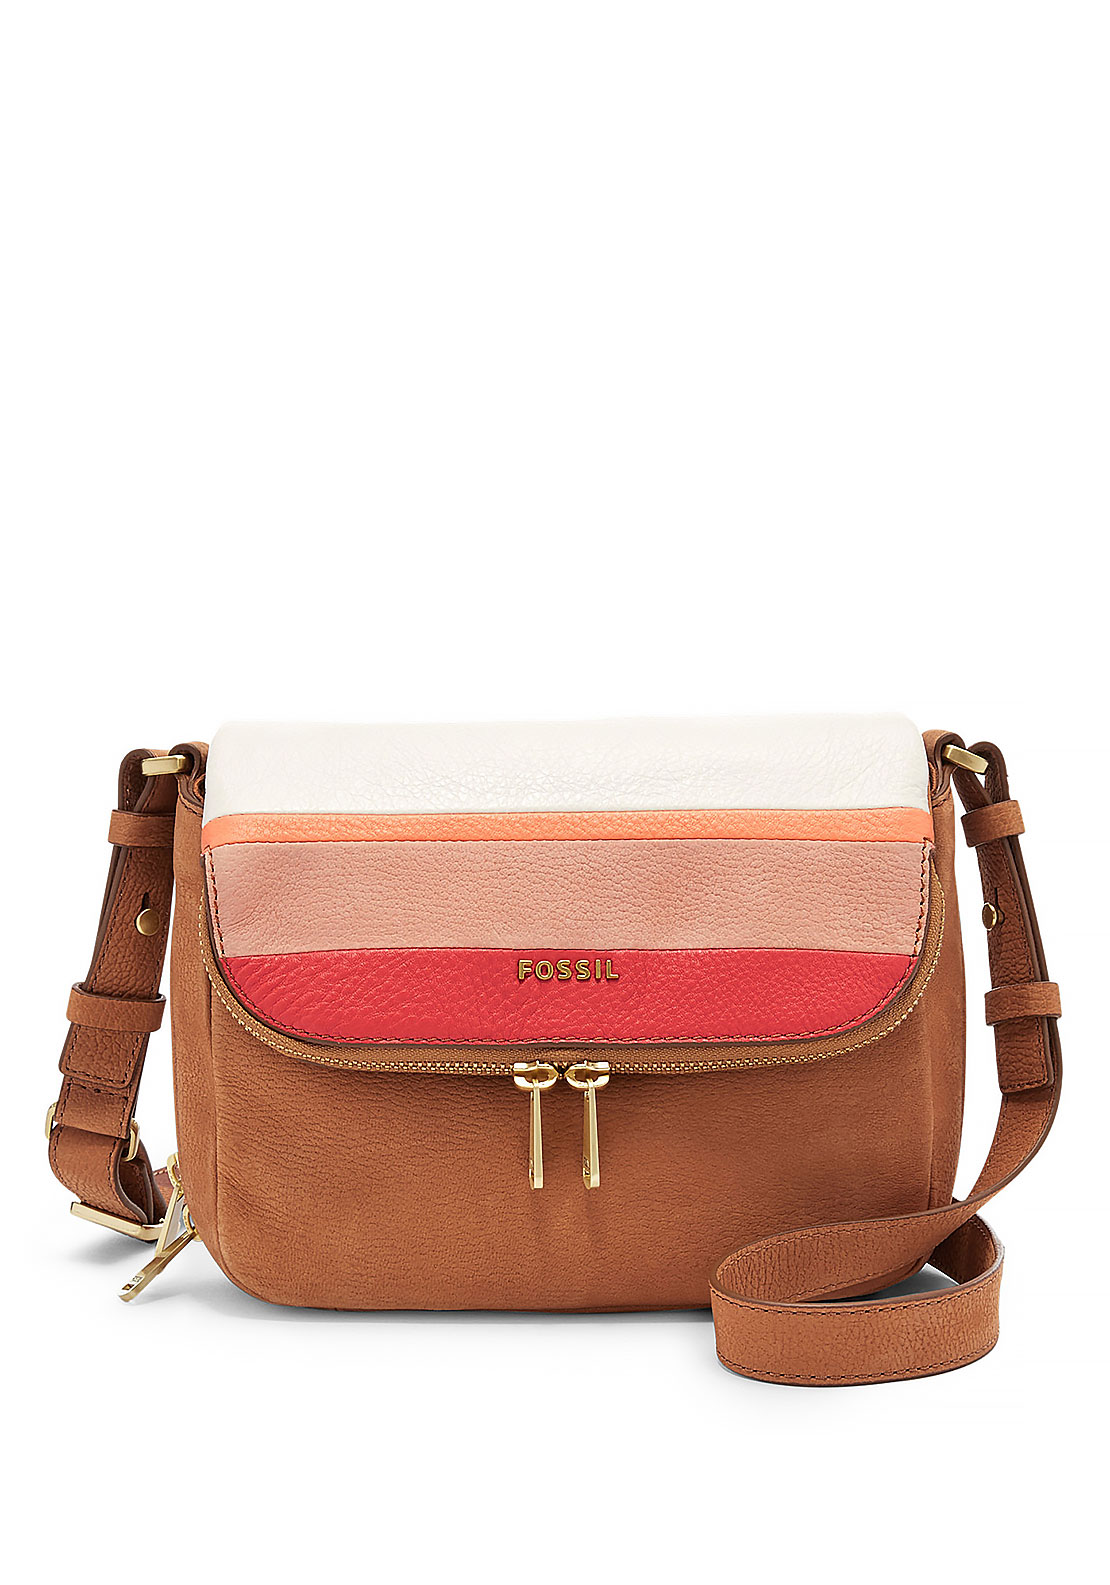 Fossil Preston Small Leather Flap Crossbody Bag, Tan Multi